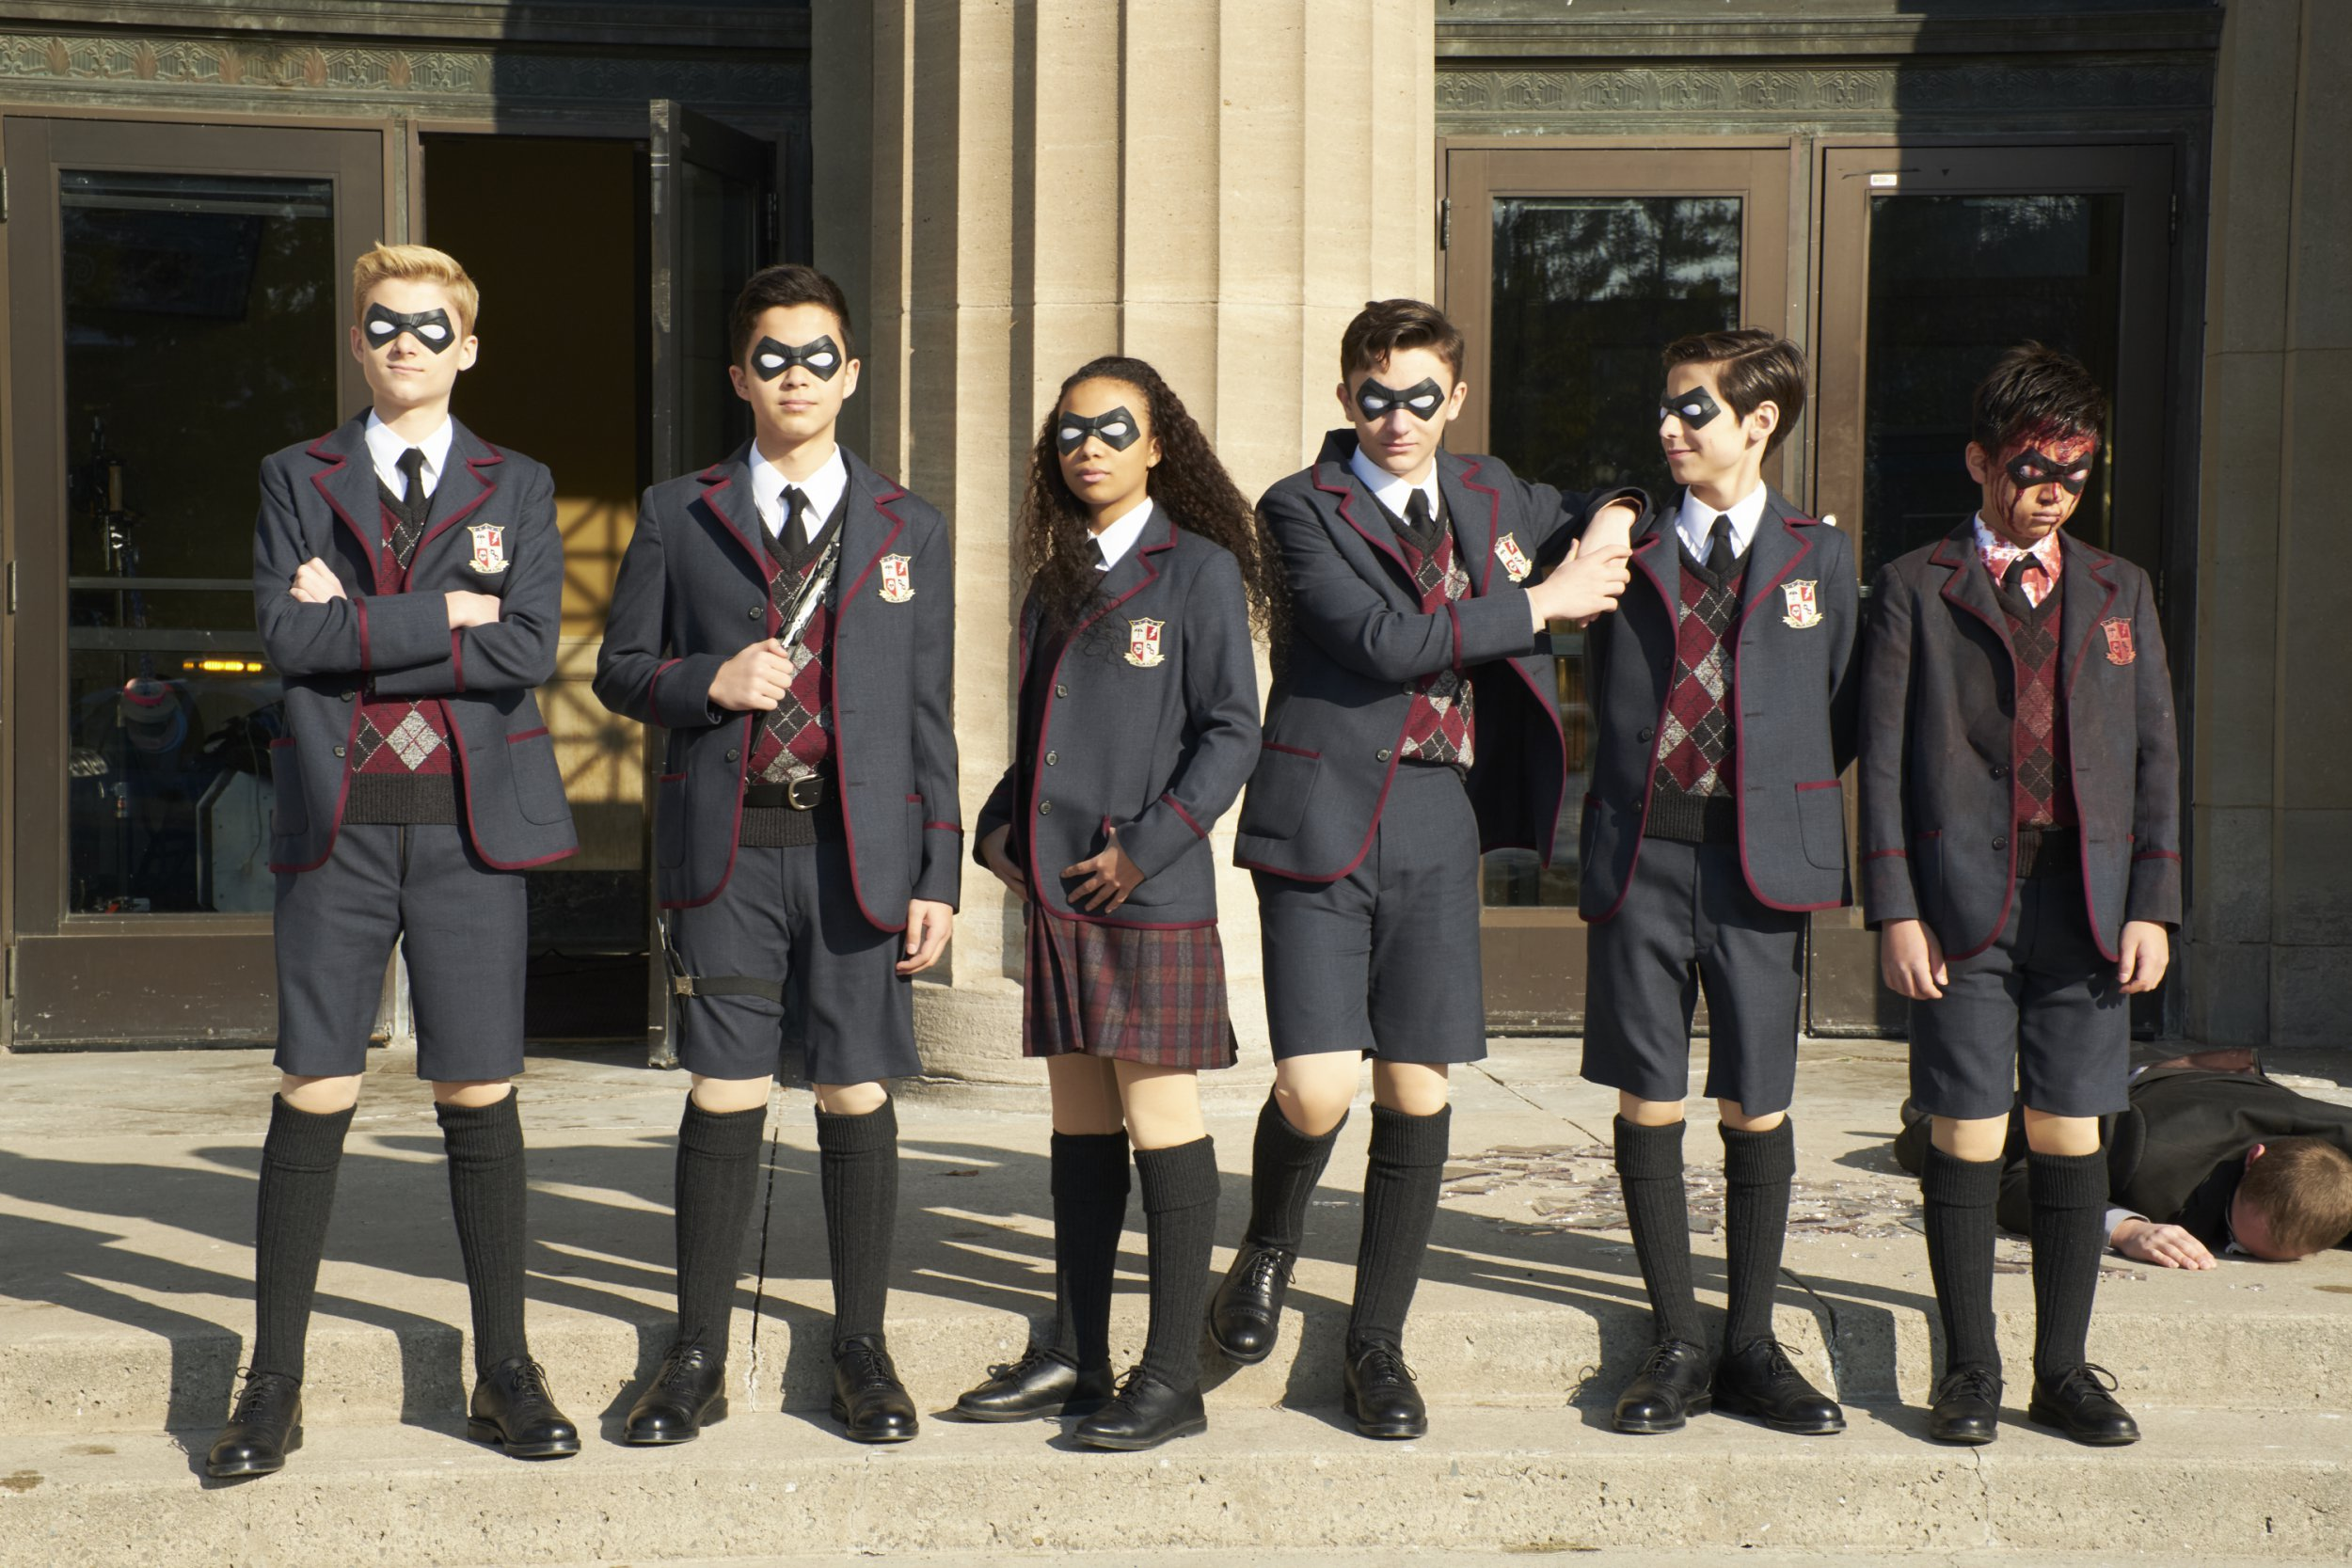 The Umbrella Academy raked in an insane amount of viewers in its first month of streaming on Netflix